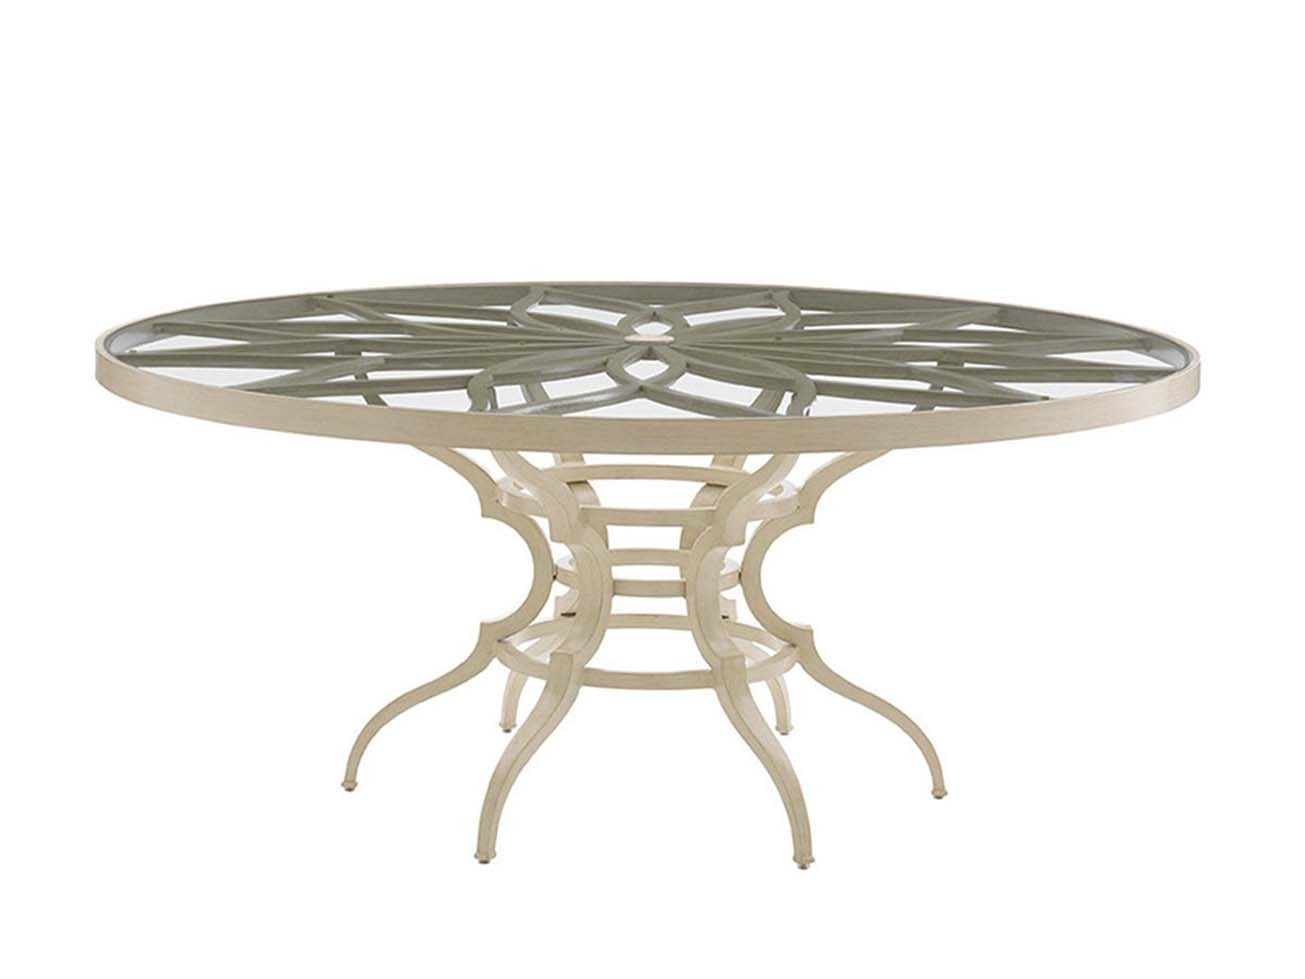 Misty Garden Round Dining Table Base Hausers Patio : 3239870GTTB from www.hauserspatio.com size 1305 x 979 jpeg 56kB